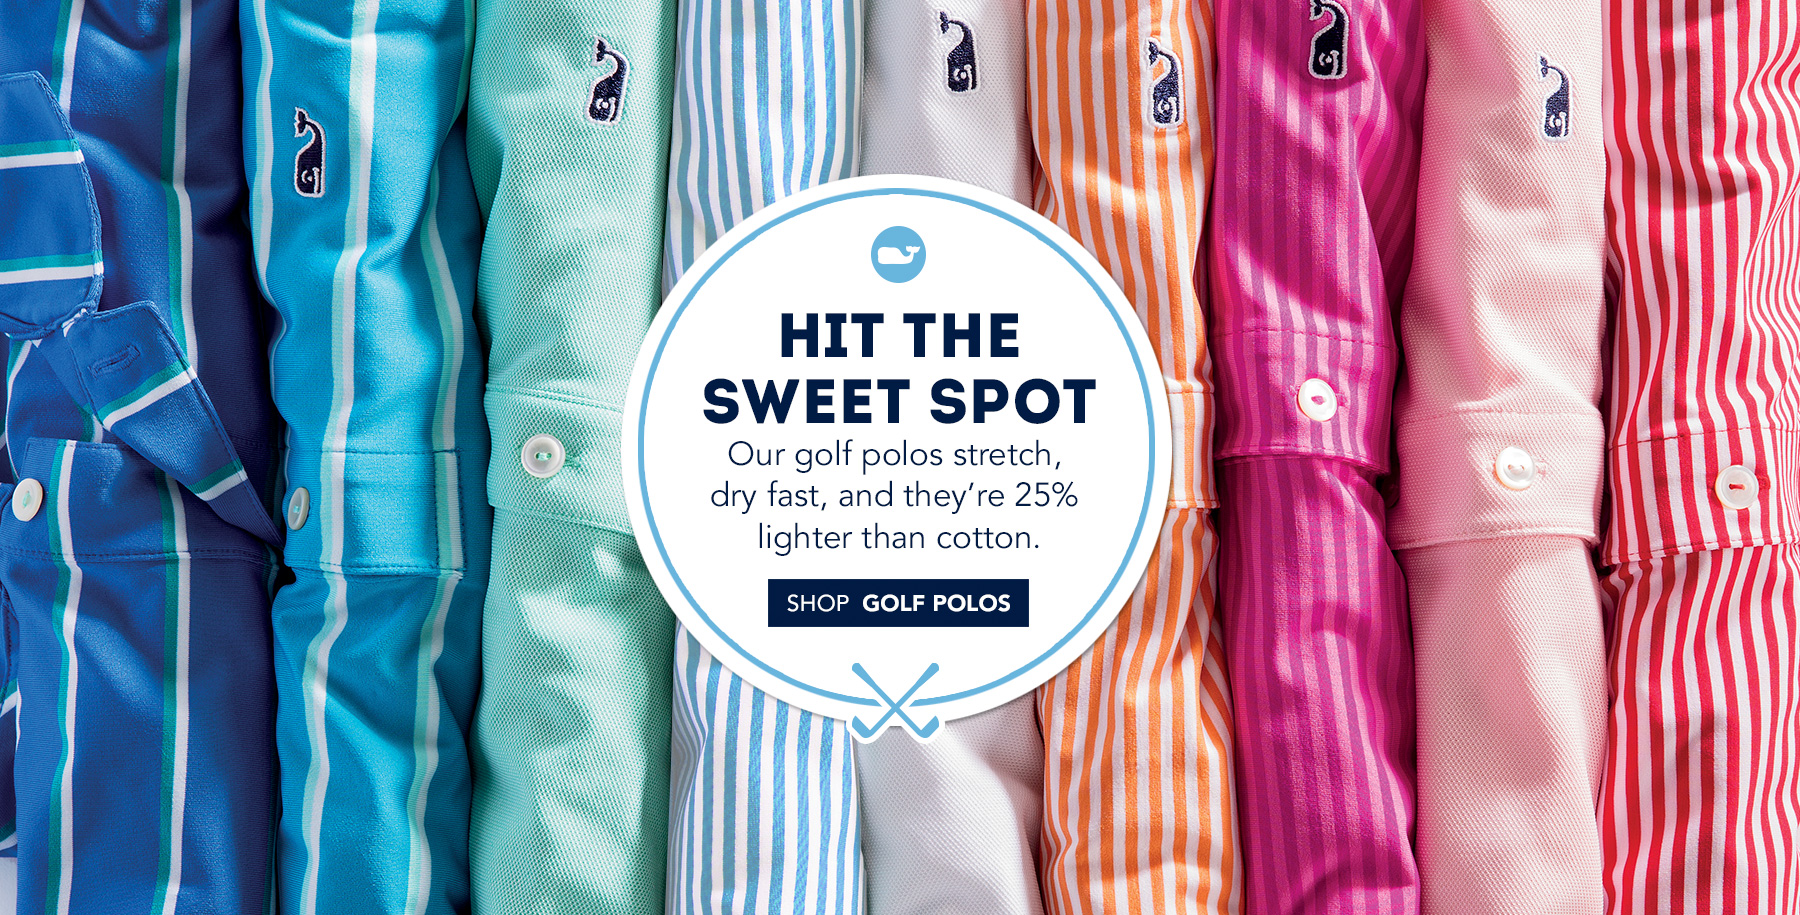 Hit The Sweet Spot. Our golf polos stretch, dry fast, and they're 25% lighter than cotton. Shop Golf Polos.